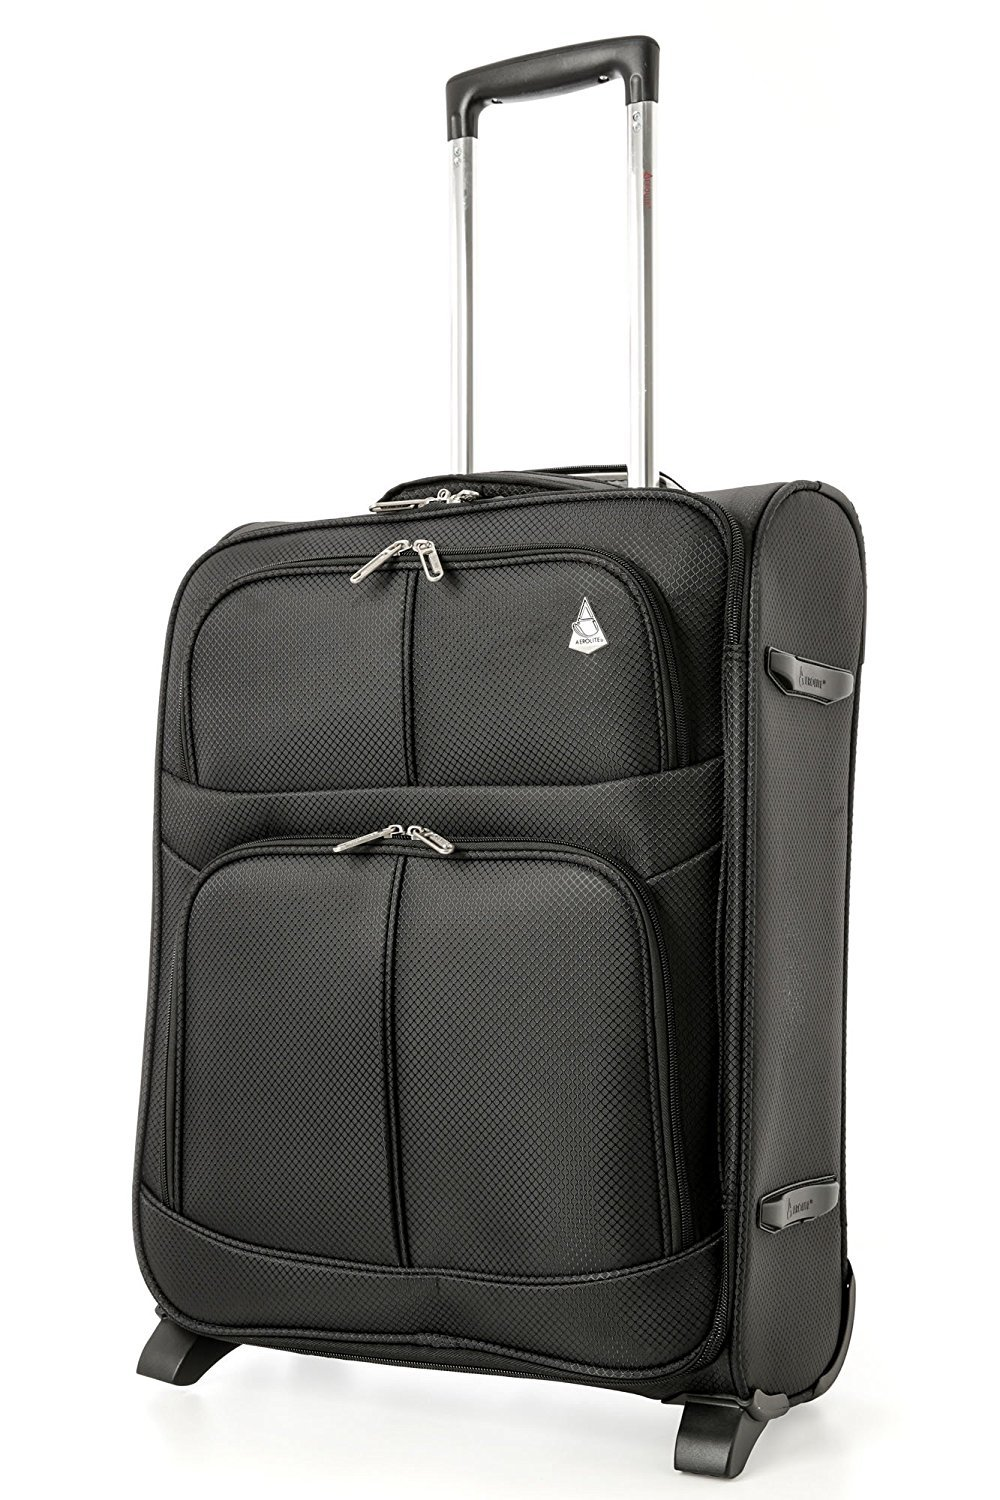 Aerolite 55x40x20cm 42L 2 Wheel Lightweight Ryanair Maximum Size Carry On Hand Cabin Luggage Suitcase, Expandable to 55x40x23cm 48L for Lufthansa, Norwegian, Eurowings, Wizz Air & More! Black